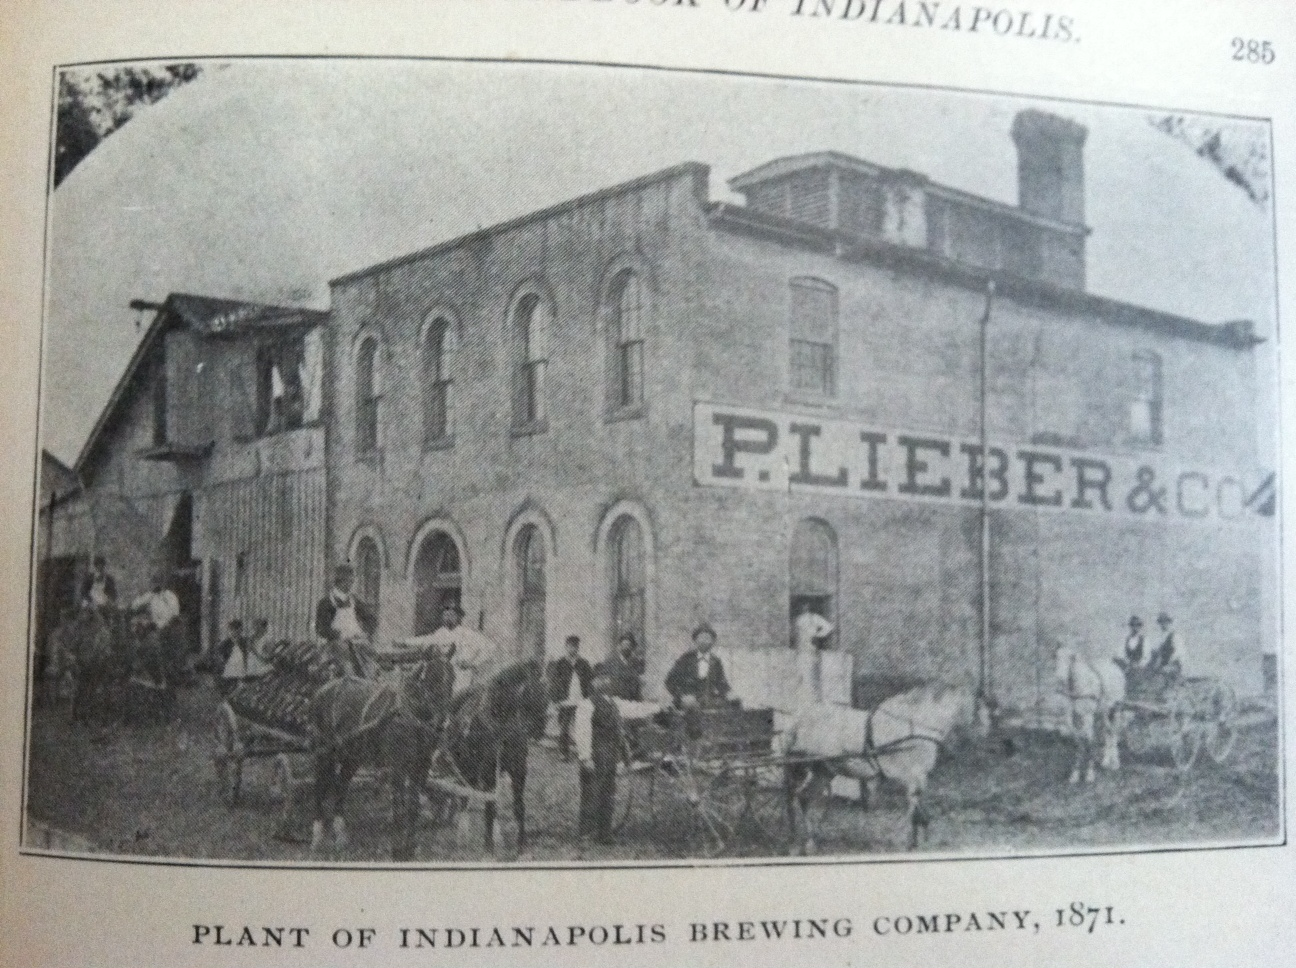 Sunday Adverts: Indianapolis Brewing Company/ P. Lieber Brewing Company